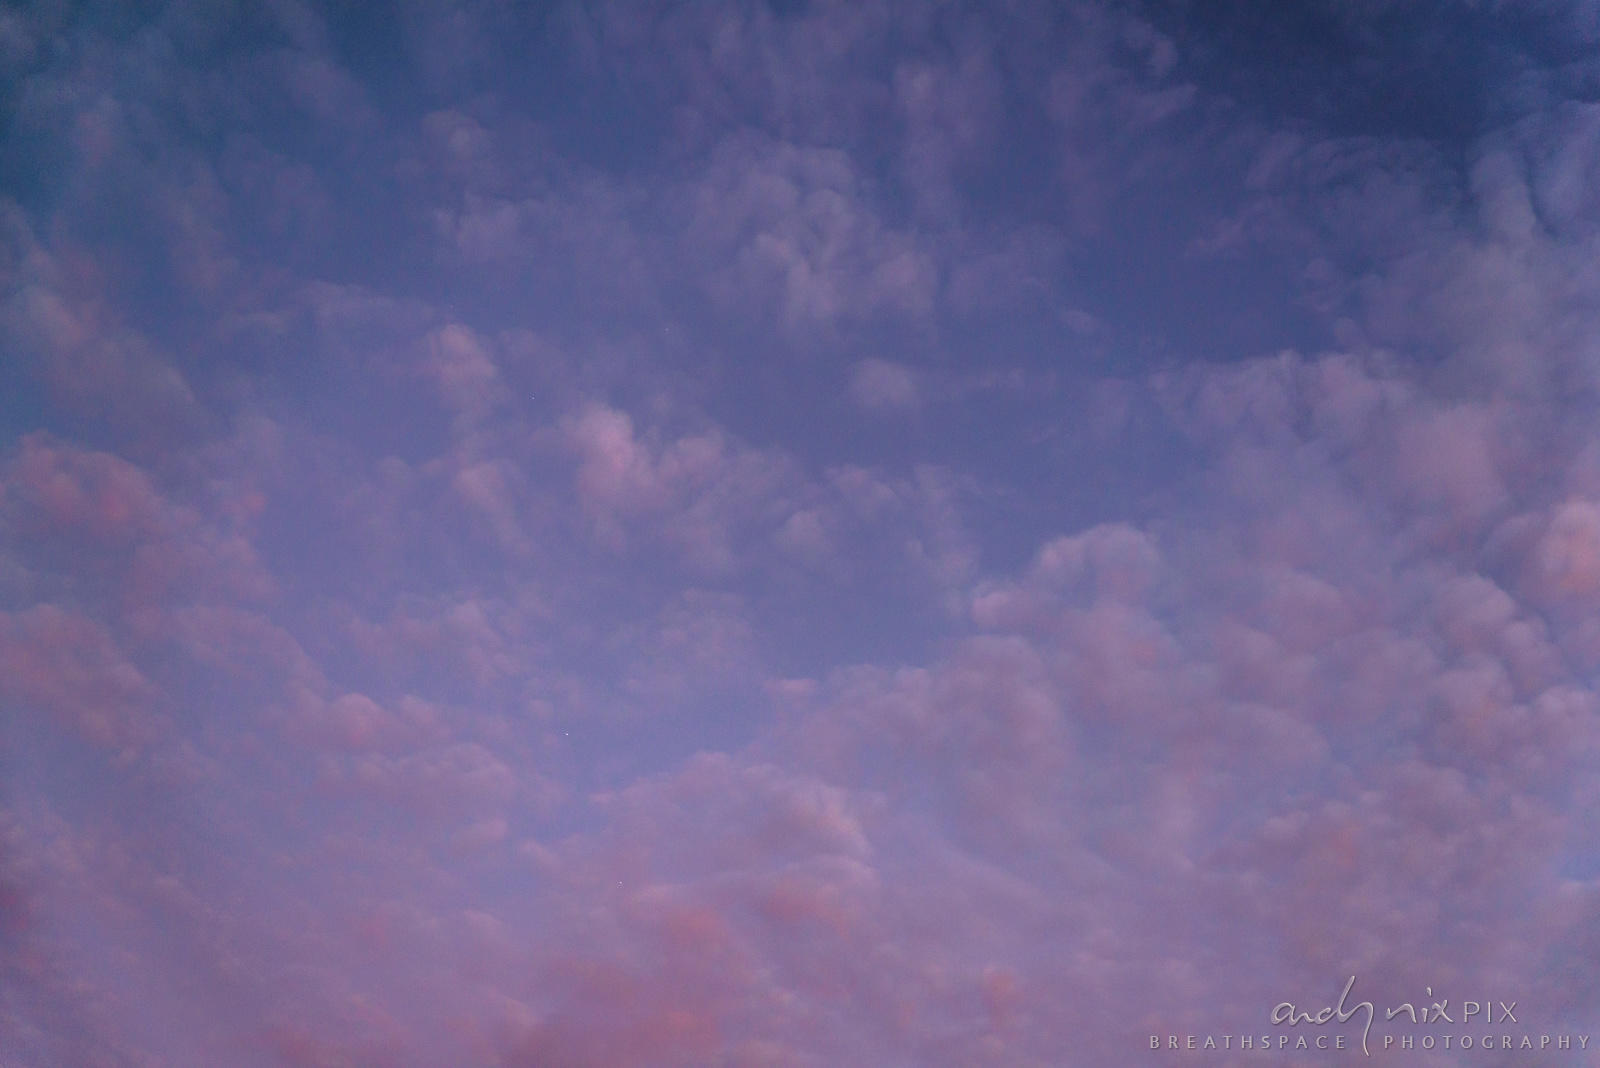 Fluffy pink clouds in a blue sky.